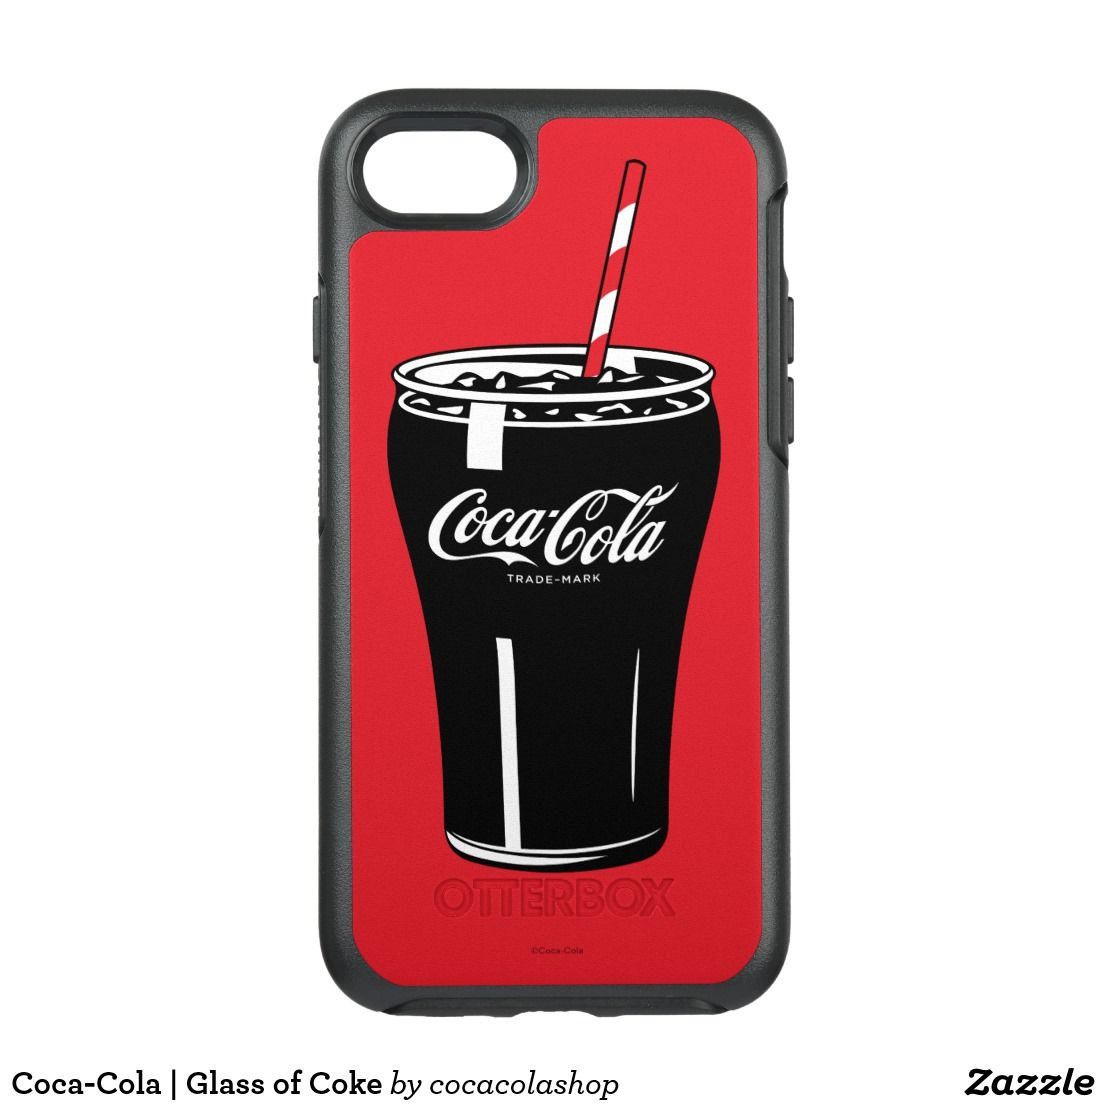 Coca-Cola | Glass of Coke